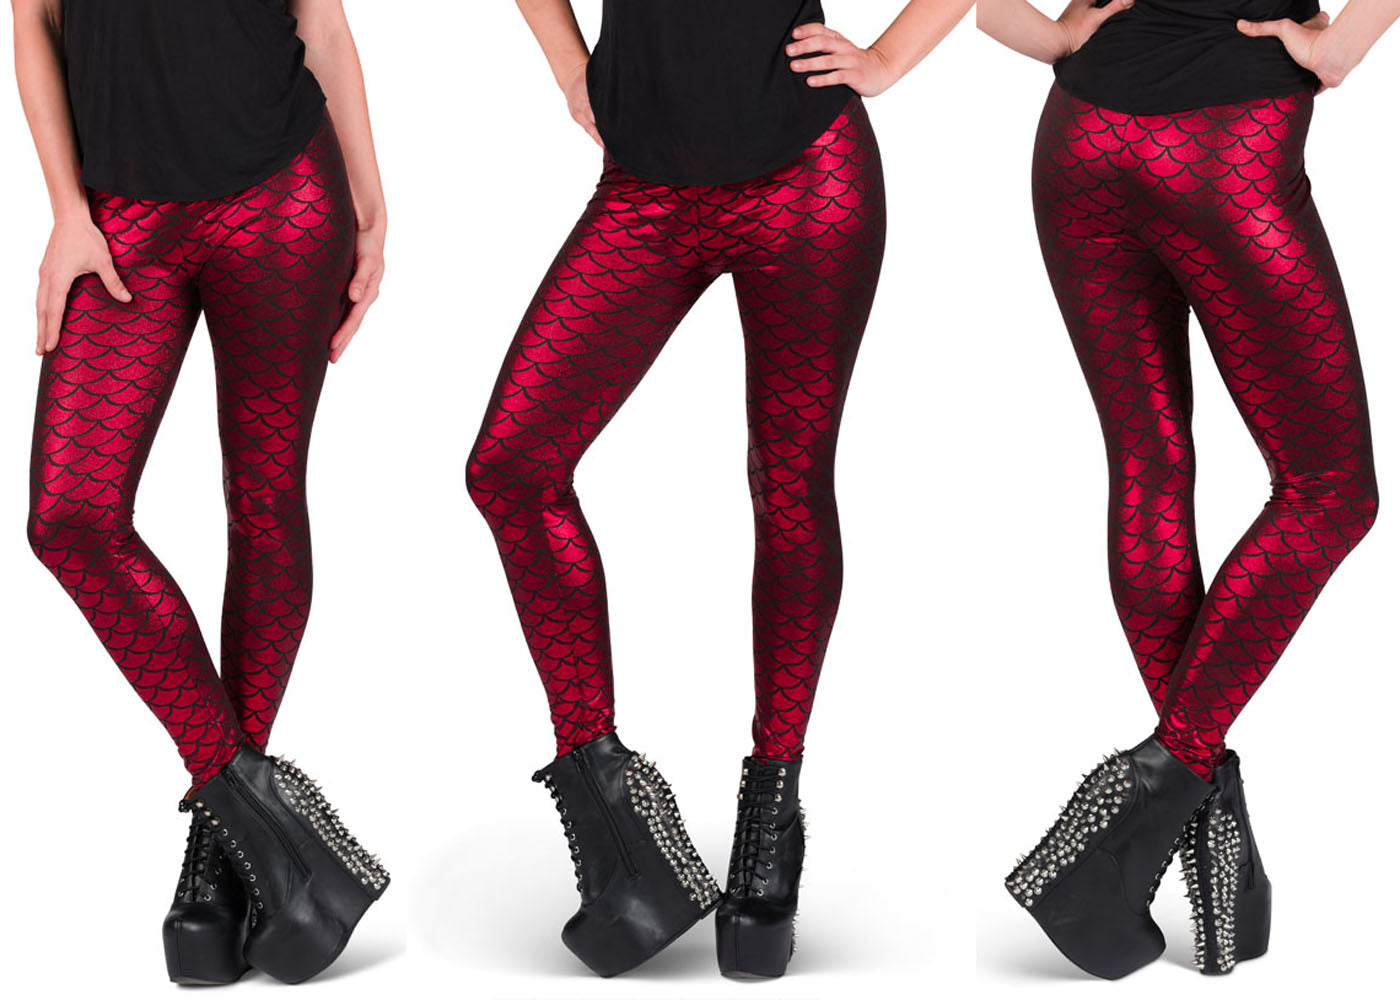 4466d7a51822c7 Majestic Mermaid Leggings – Online Legging Store